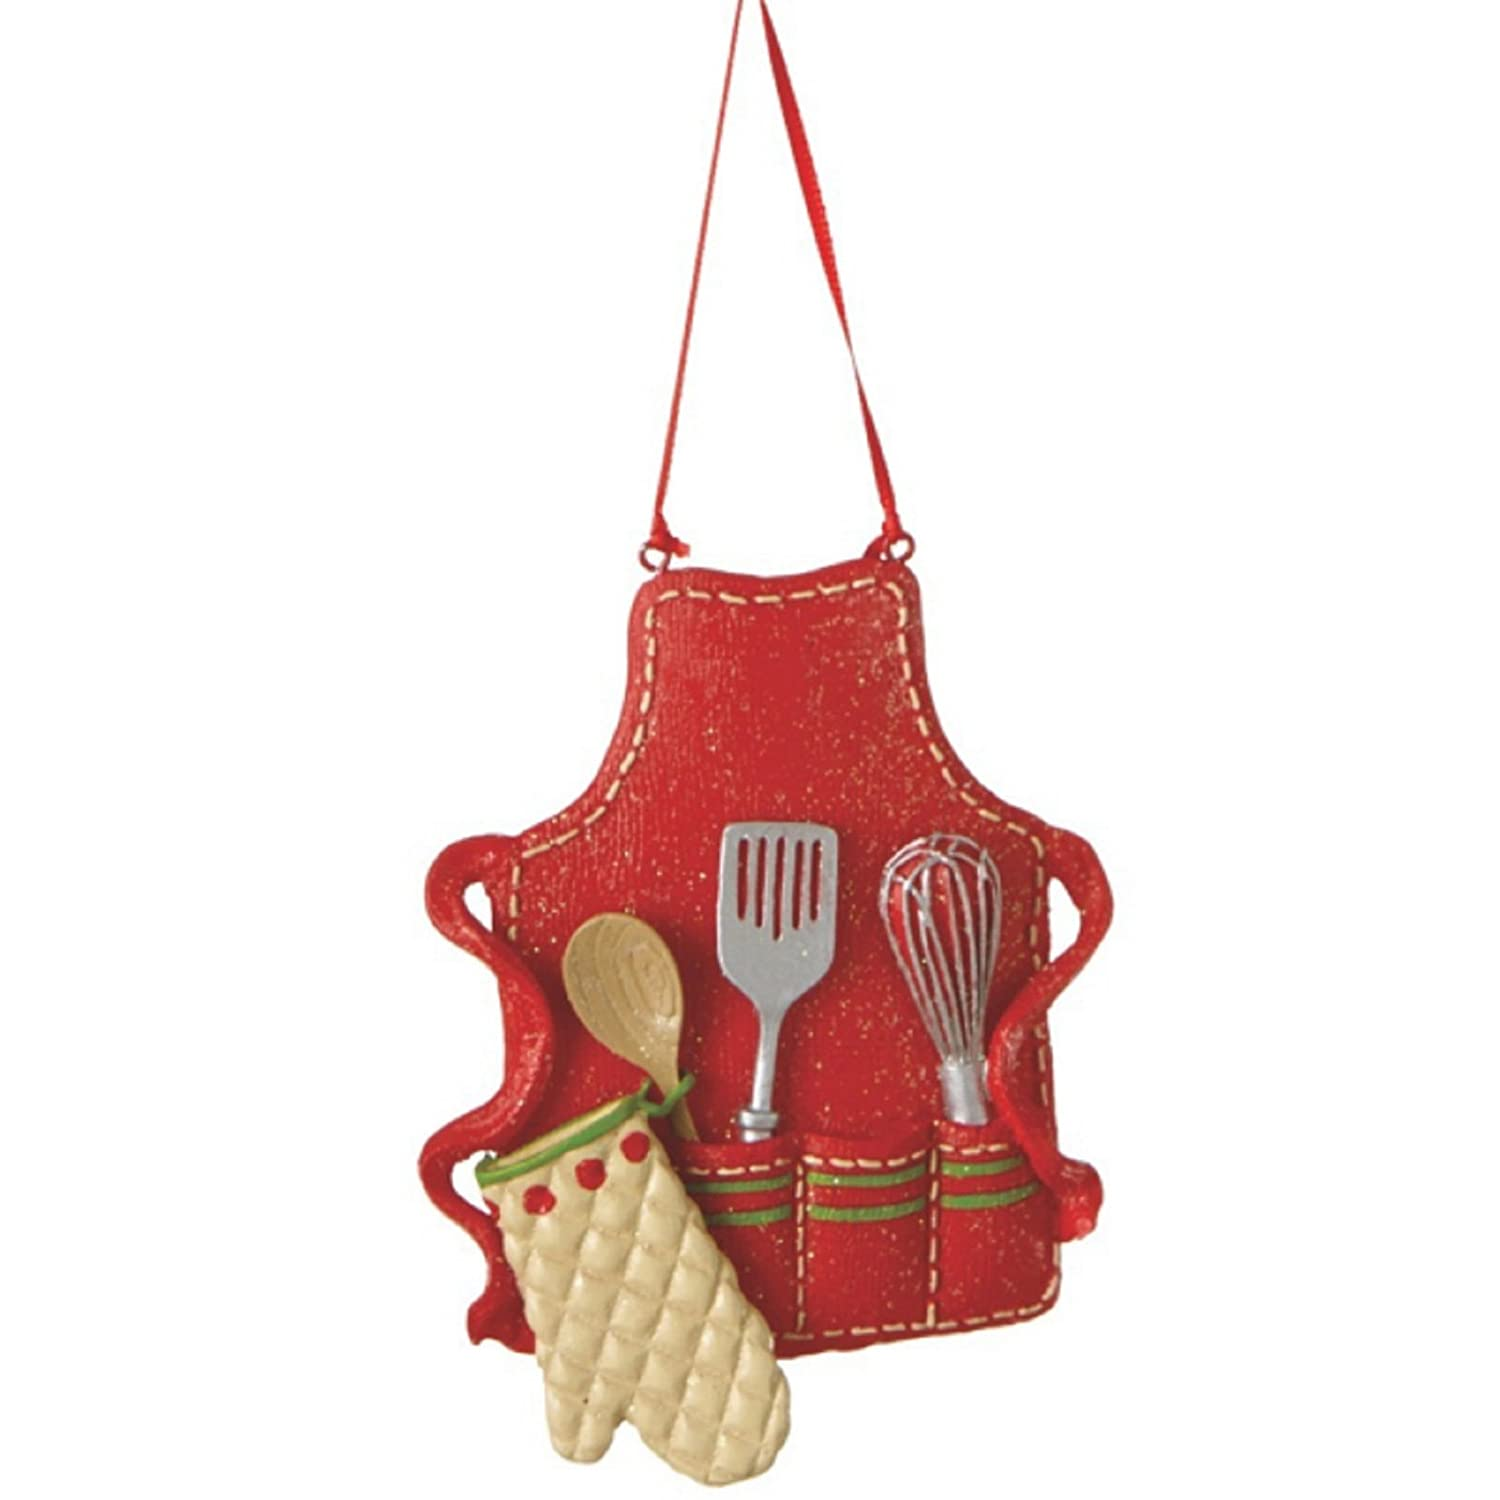 "Cute Christmas Holiday Pastry Chef Bakers Apron Ornament , Red, Medium, 3.5"" x 3"""